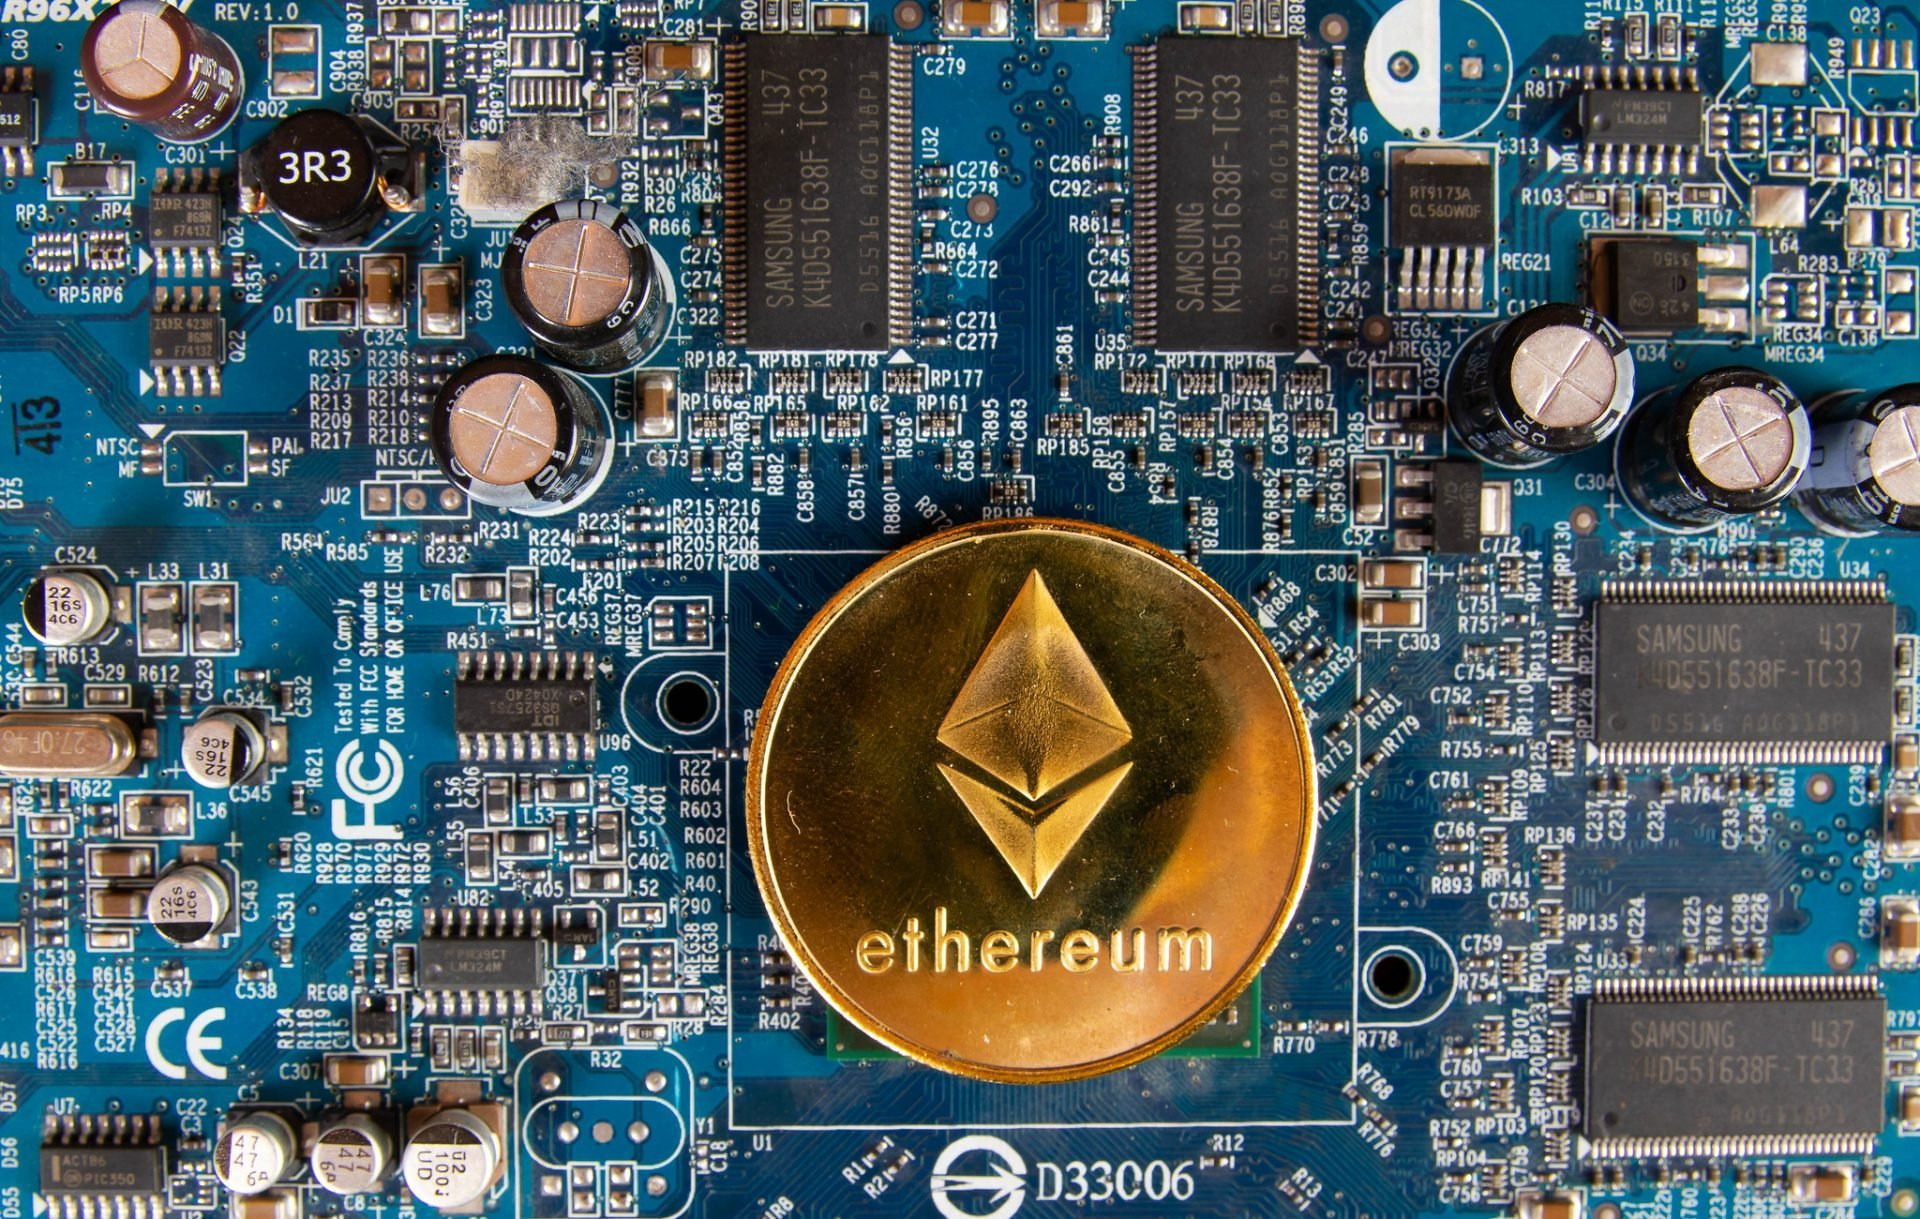 Ethereum Fees Higher Than Bitcoin's as ETH Apps Gain Traction 9